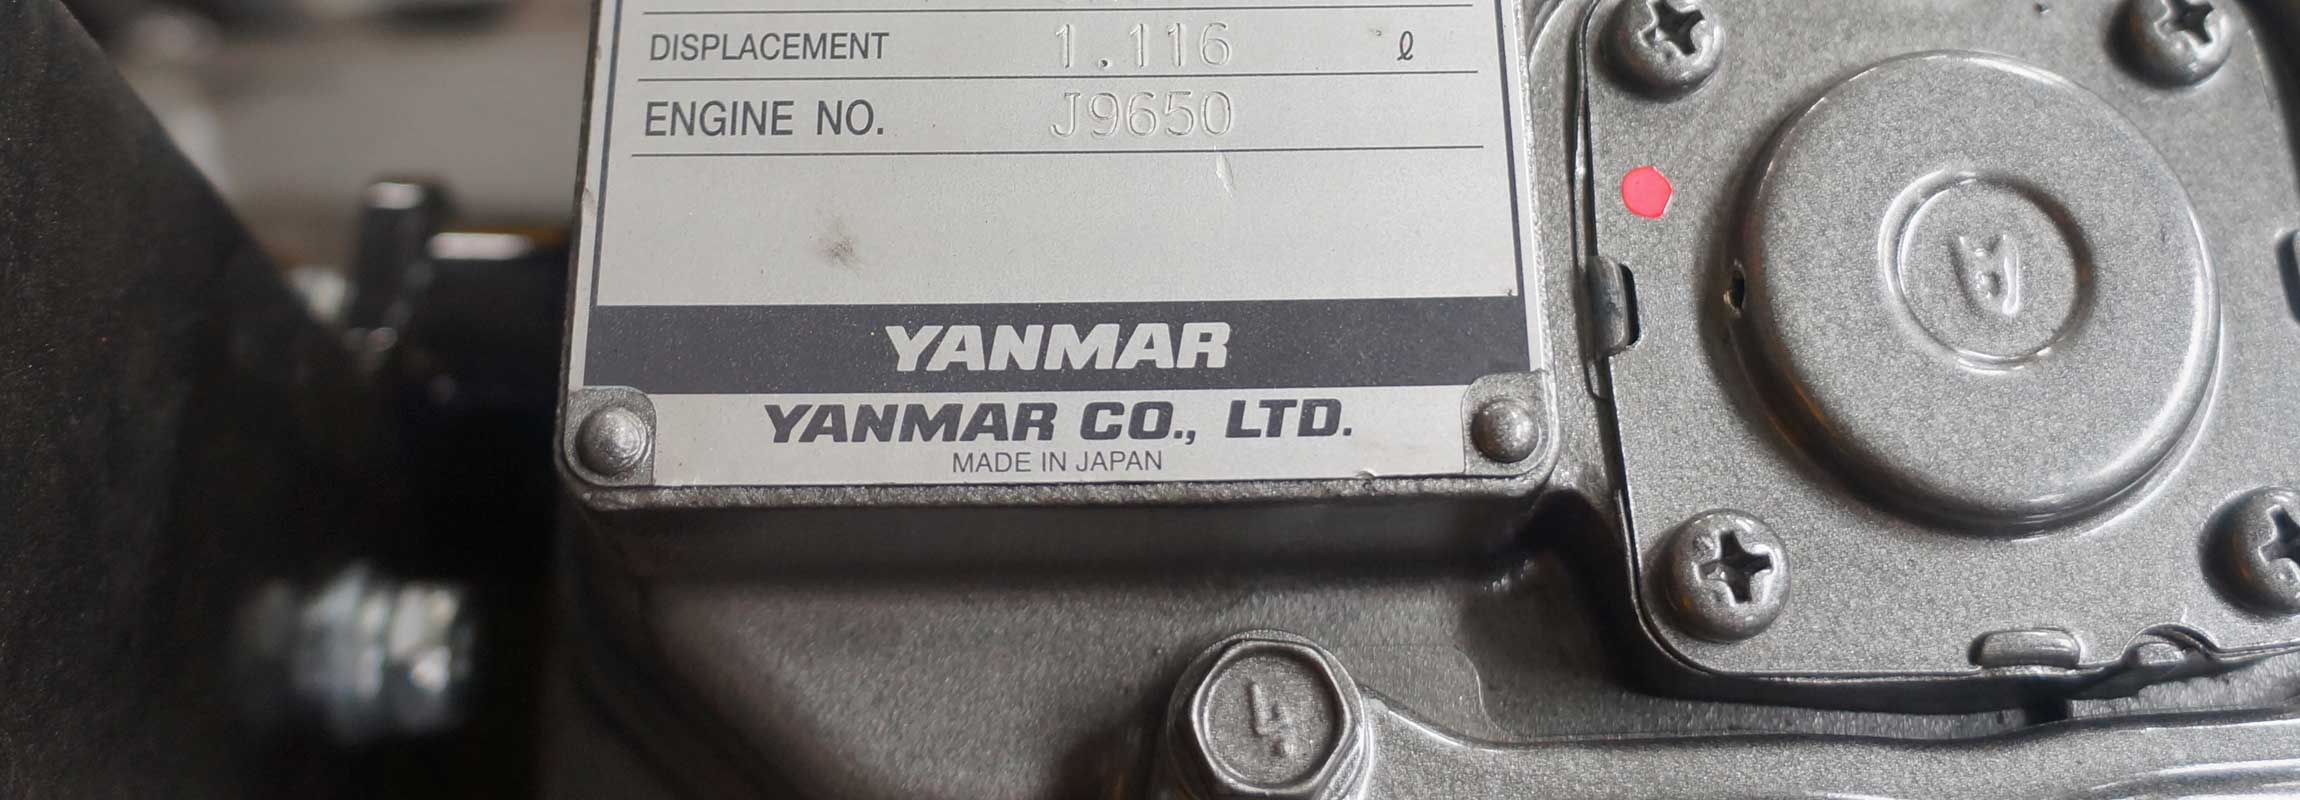 YANMAR engine for santai